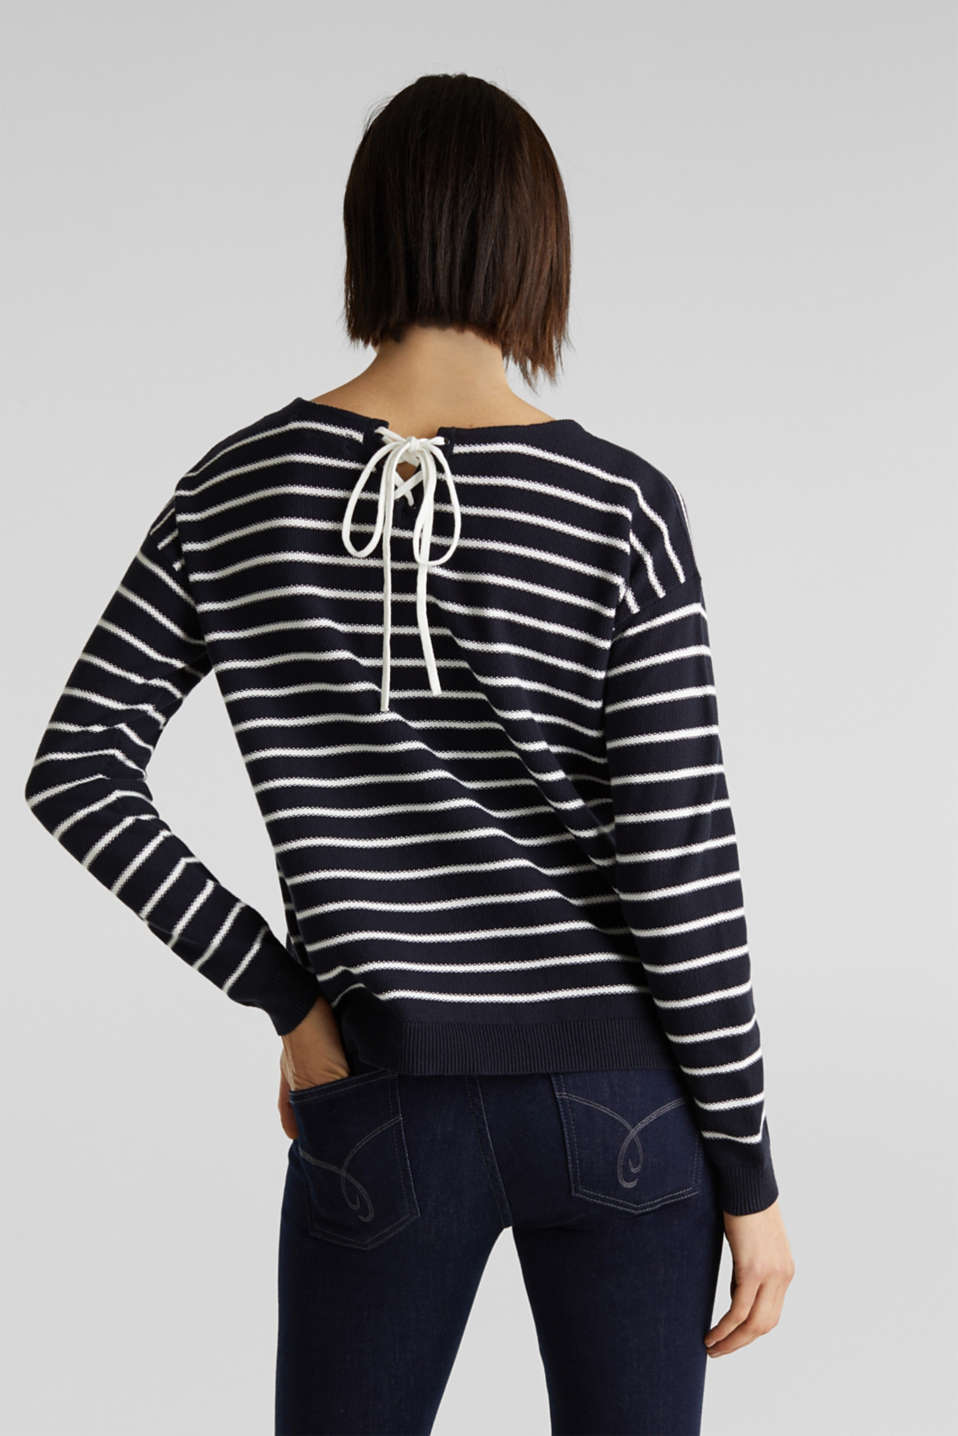 Lace-up detail jumper, 100% cotton, NAVY 4, detail image number 3